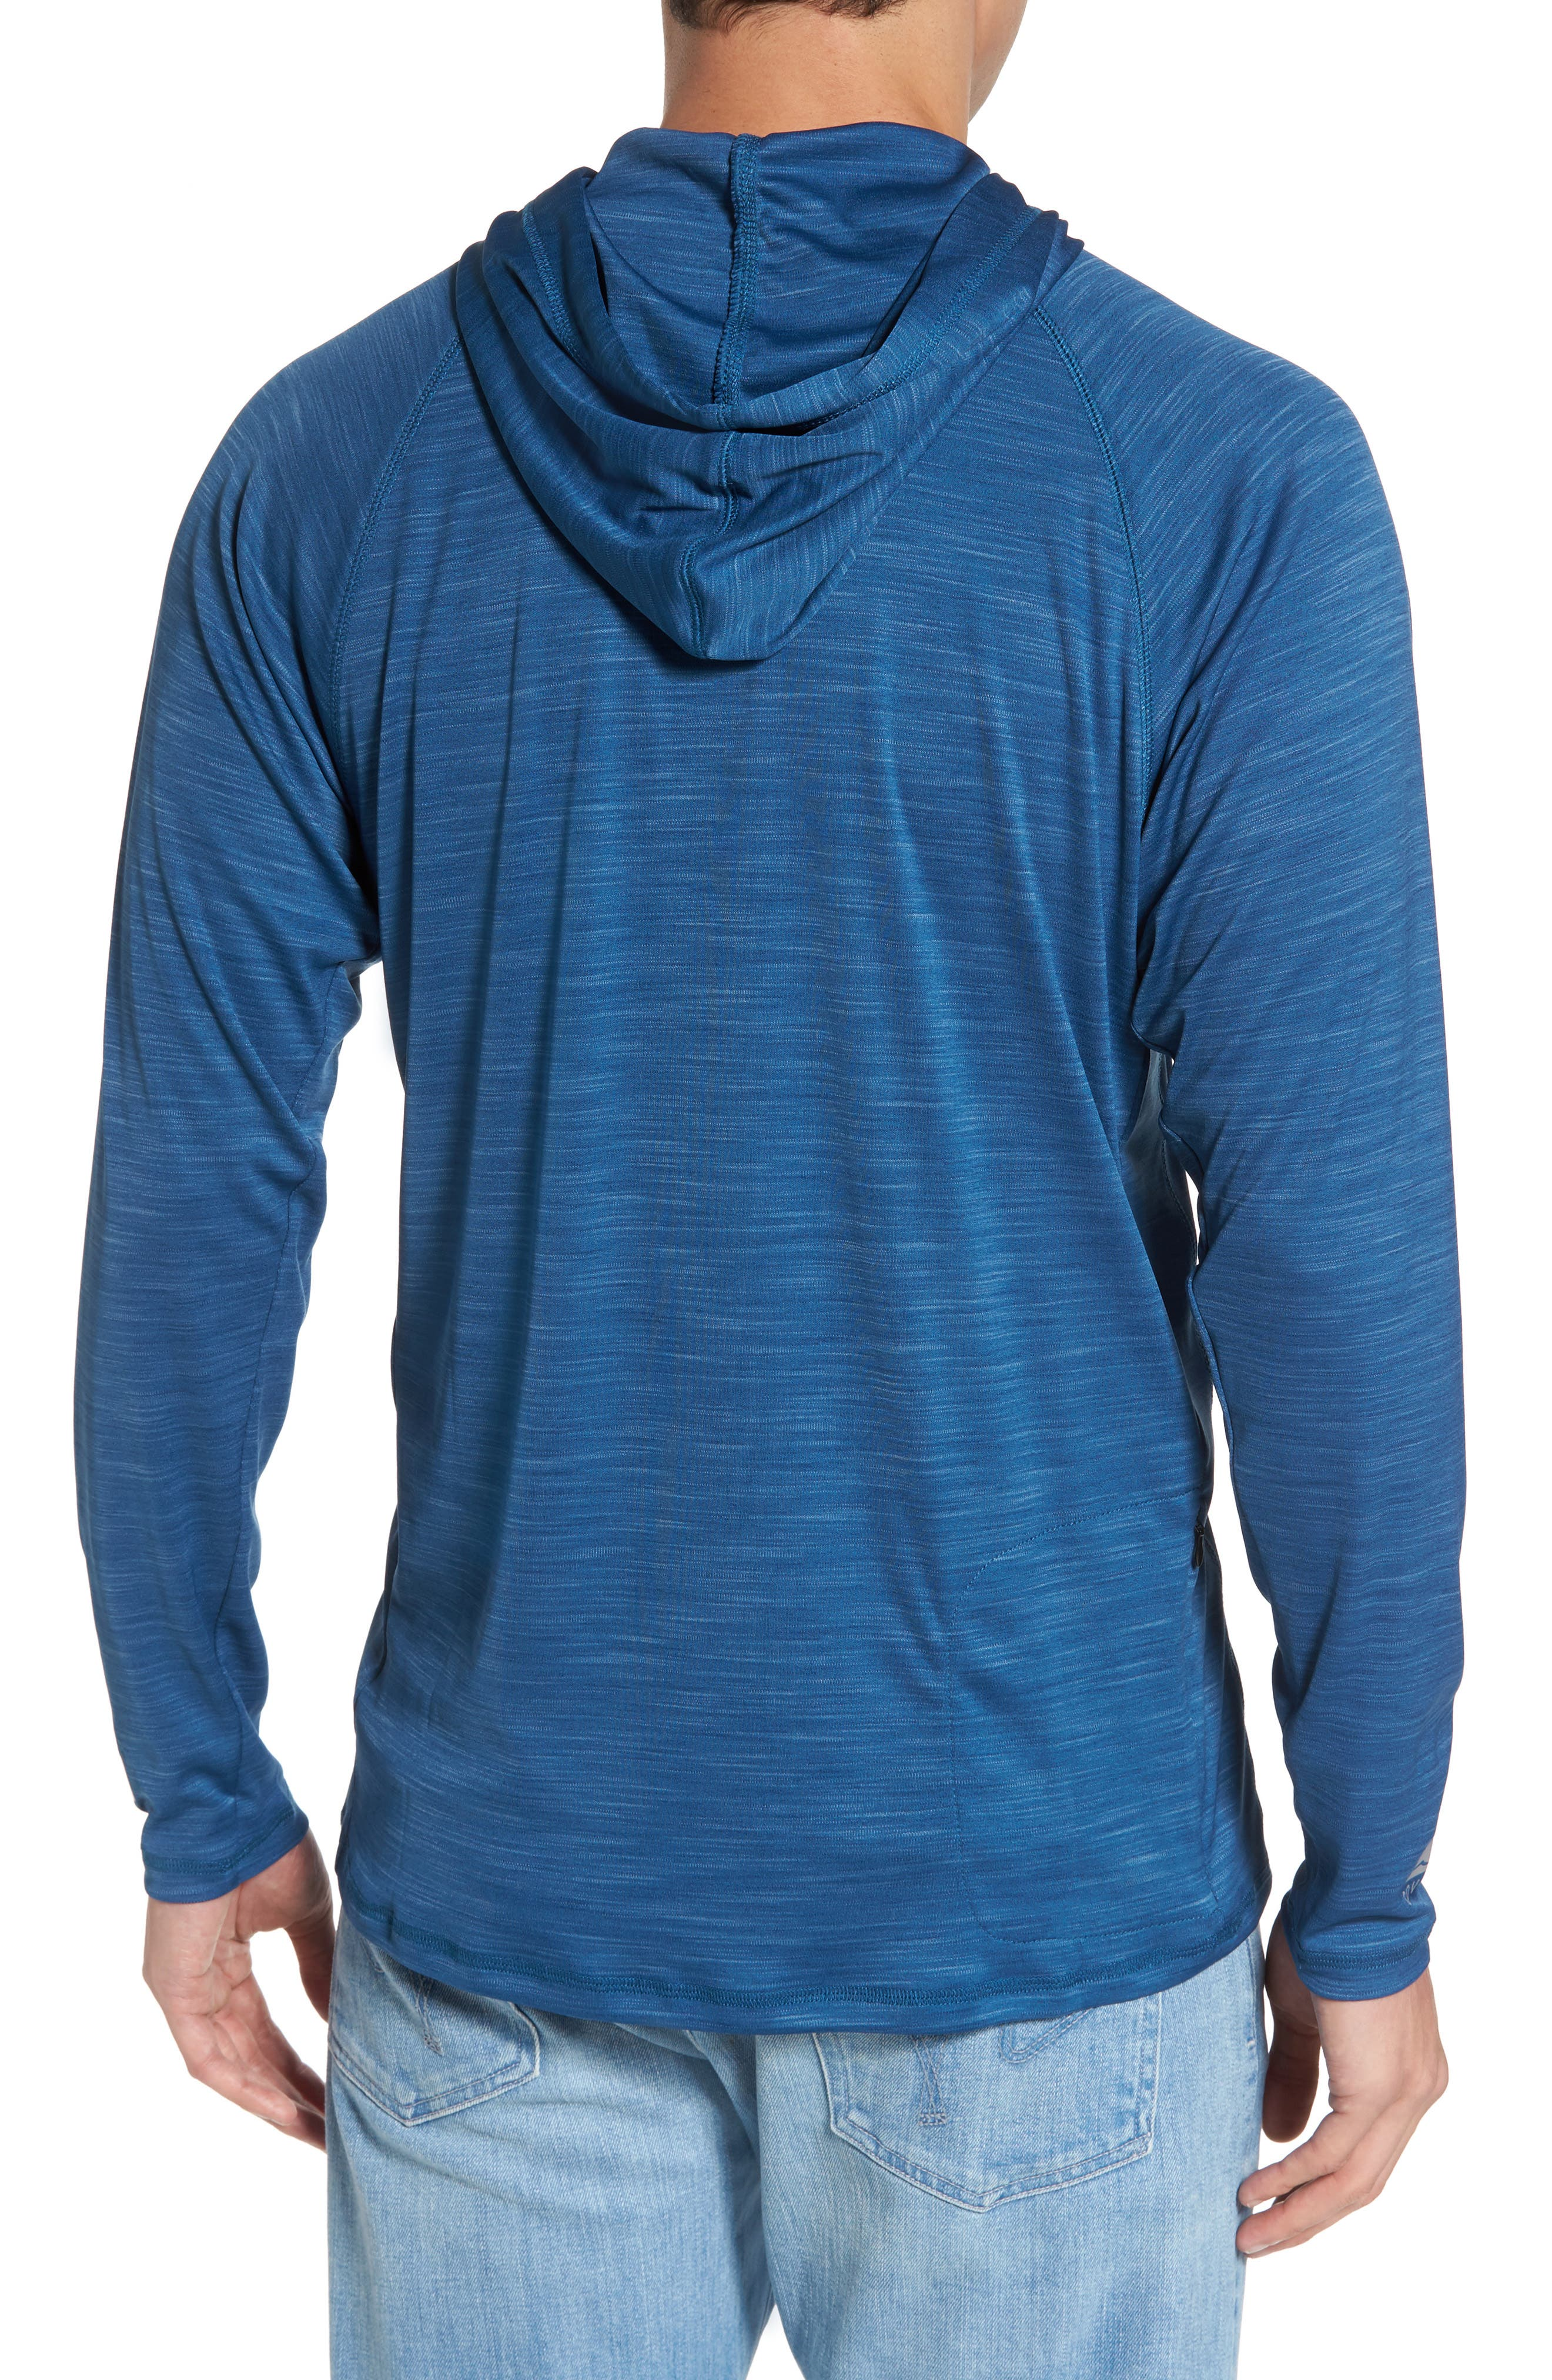 Undercover Hooded Long Sleeve Performance T-Shirt,                             Alternate thumbnail 4, color,